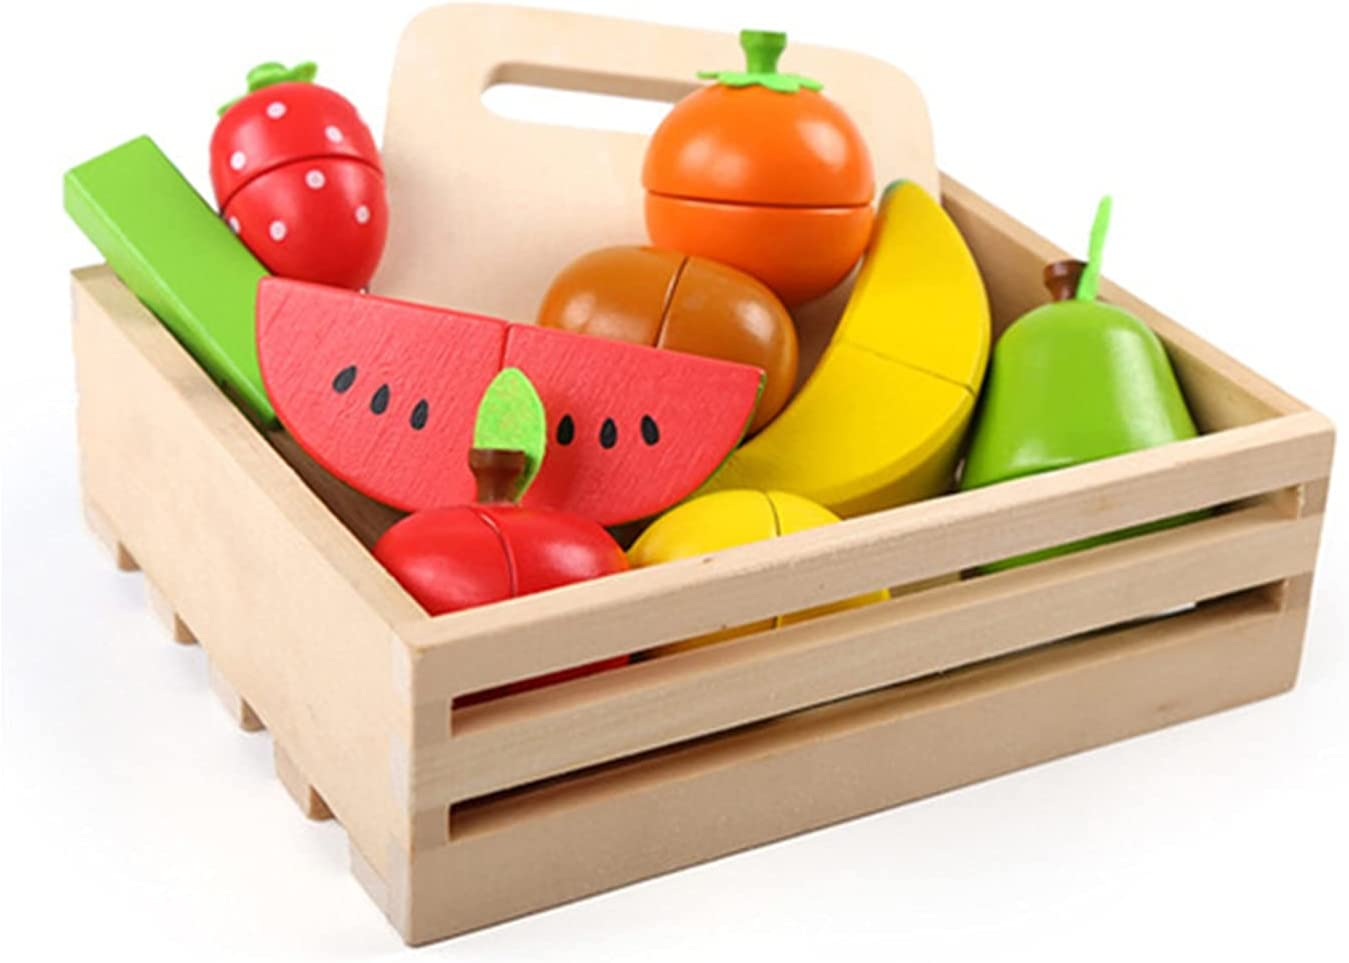 Food Toys, Pretend to Be Cut Into Toy Food, Which is Very Suitable for Holiday Toy Gifts, and Easter Stuffed Gifts. Come On, Let Your Little Chef Cook, Serve and Clean Up Immediately.